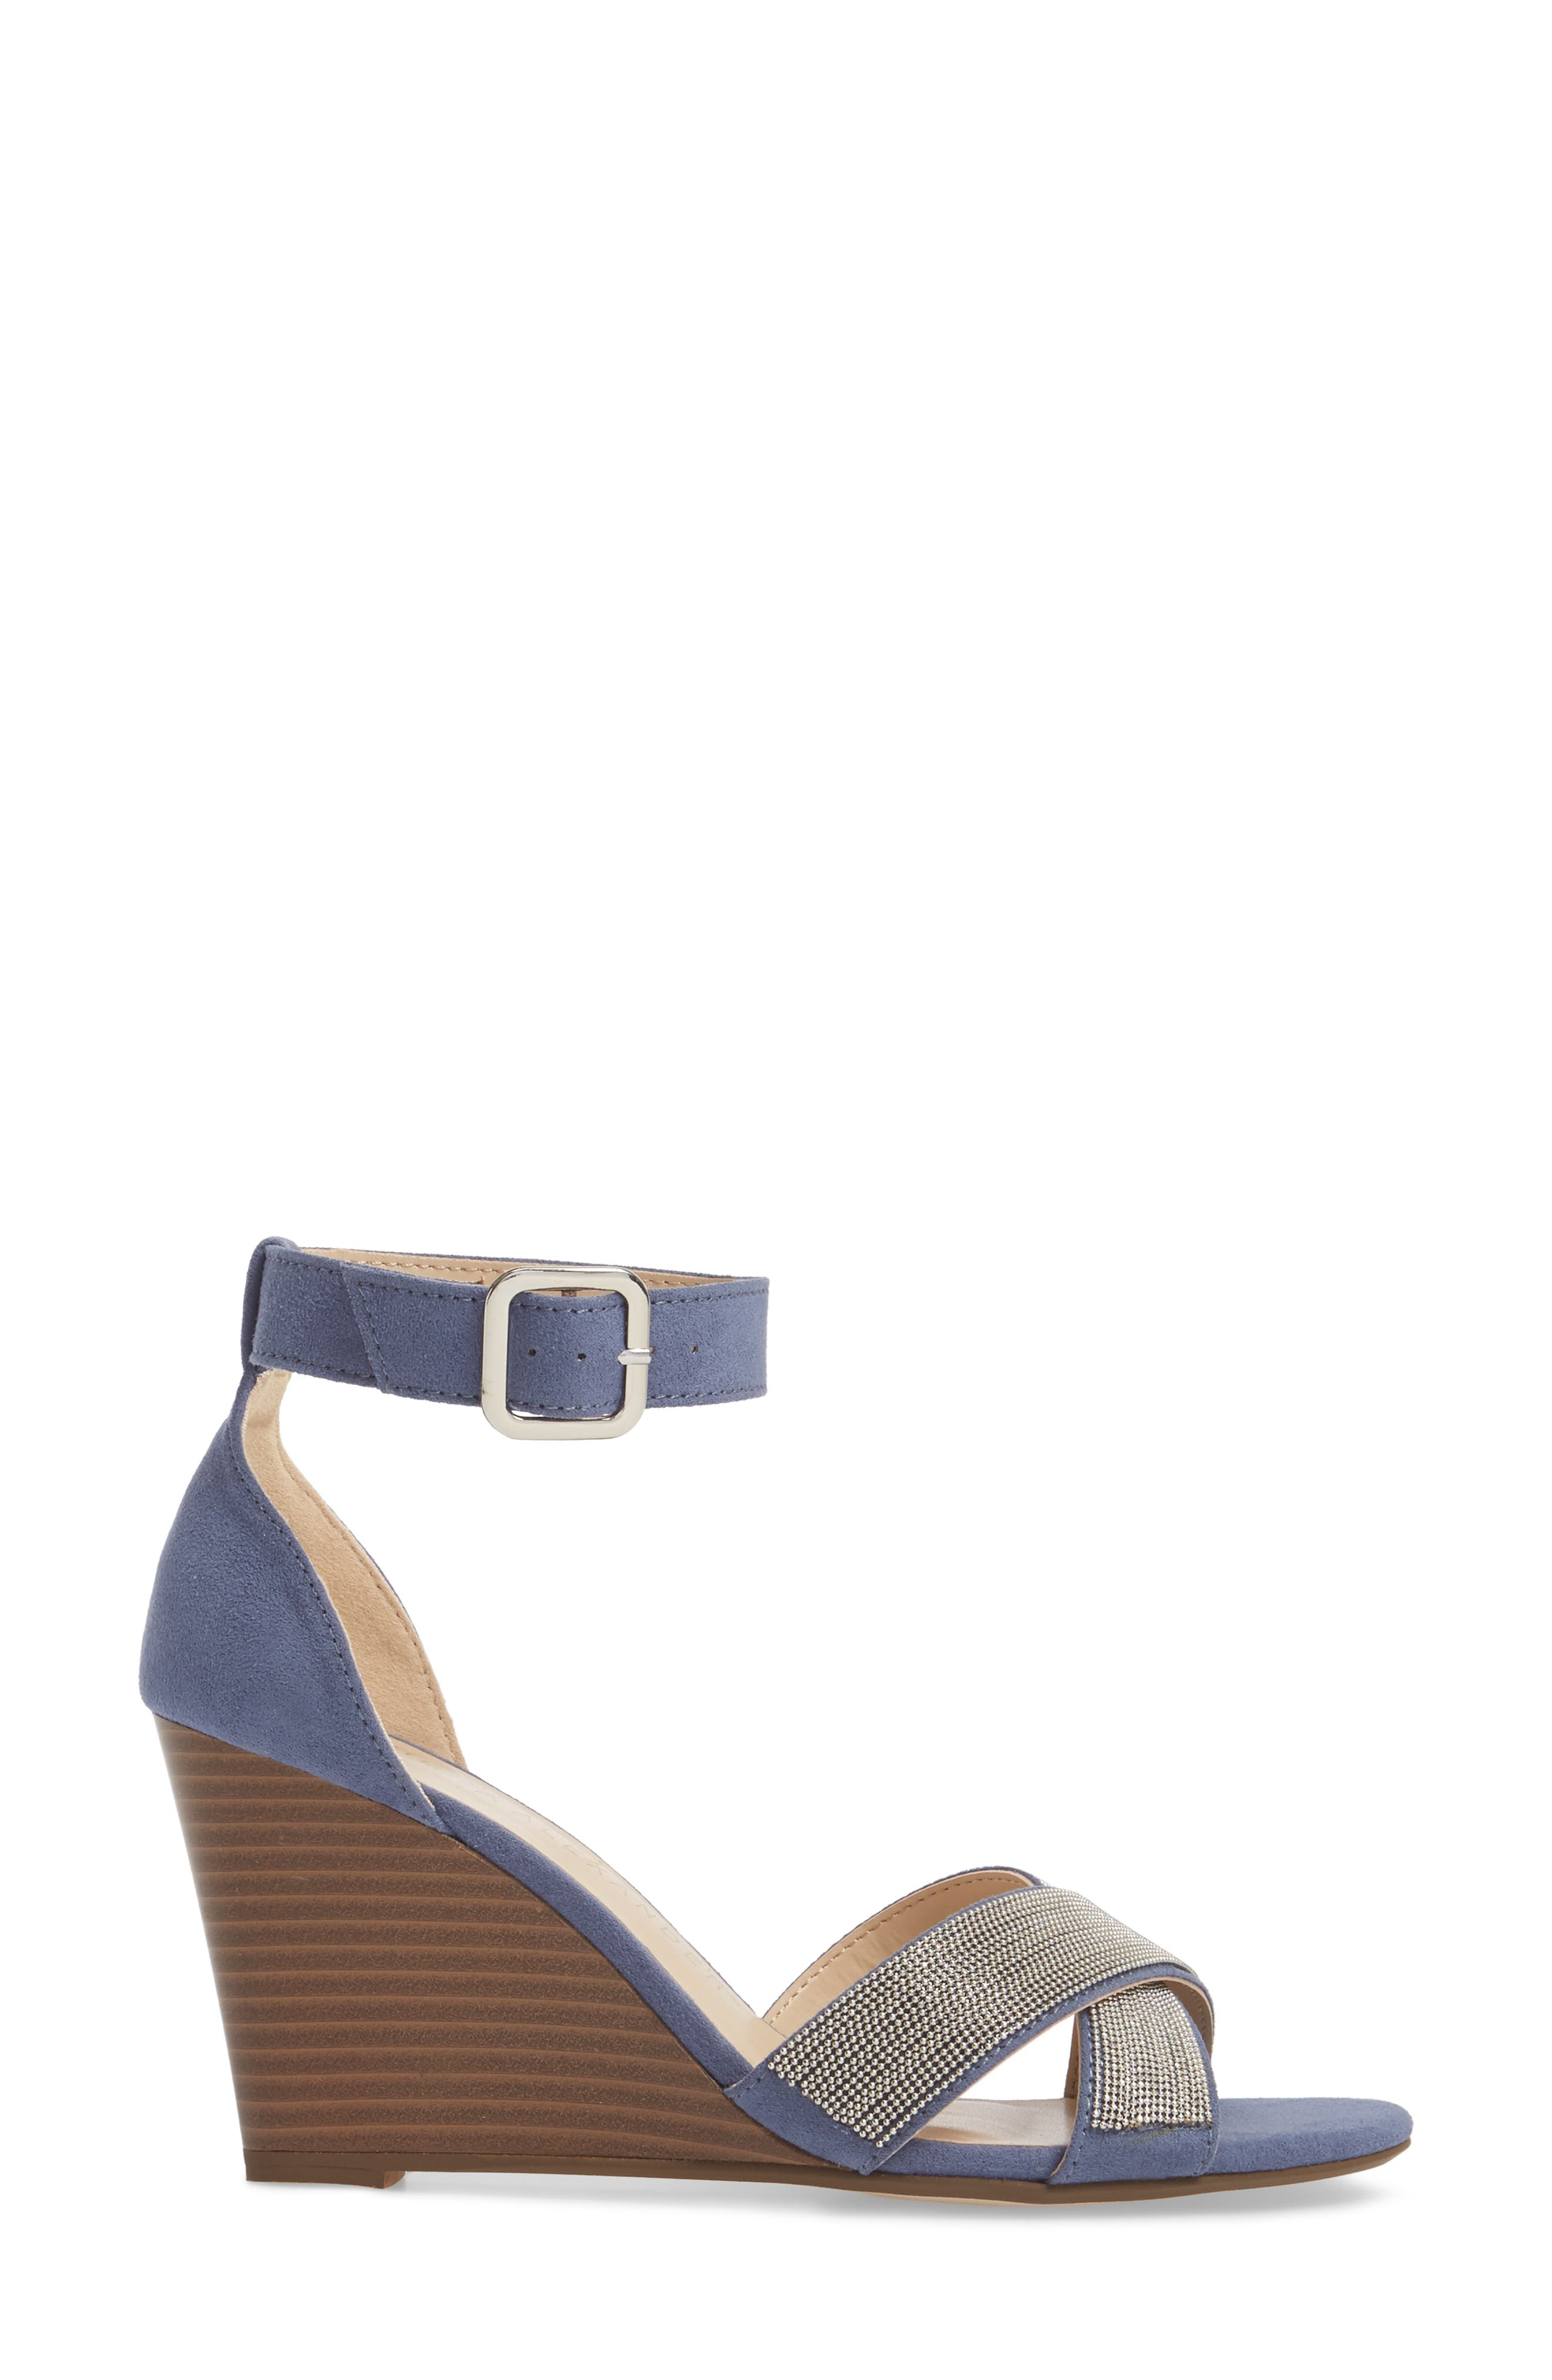 Zorra Wedge Sandal,                             Alternate thumbnail 3, color,                             Blue Suede